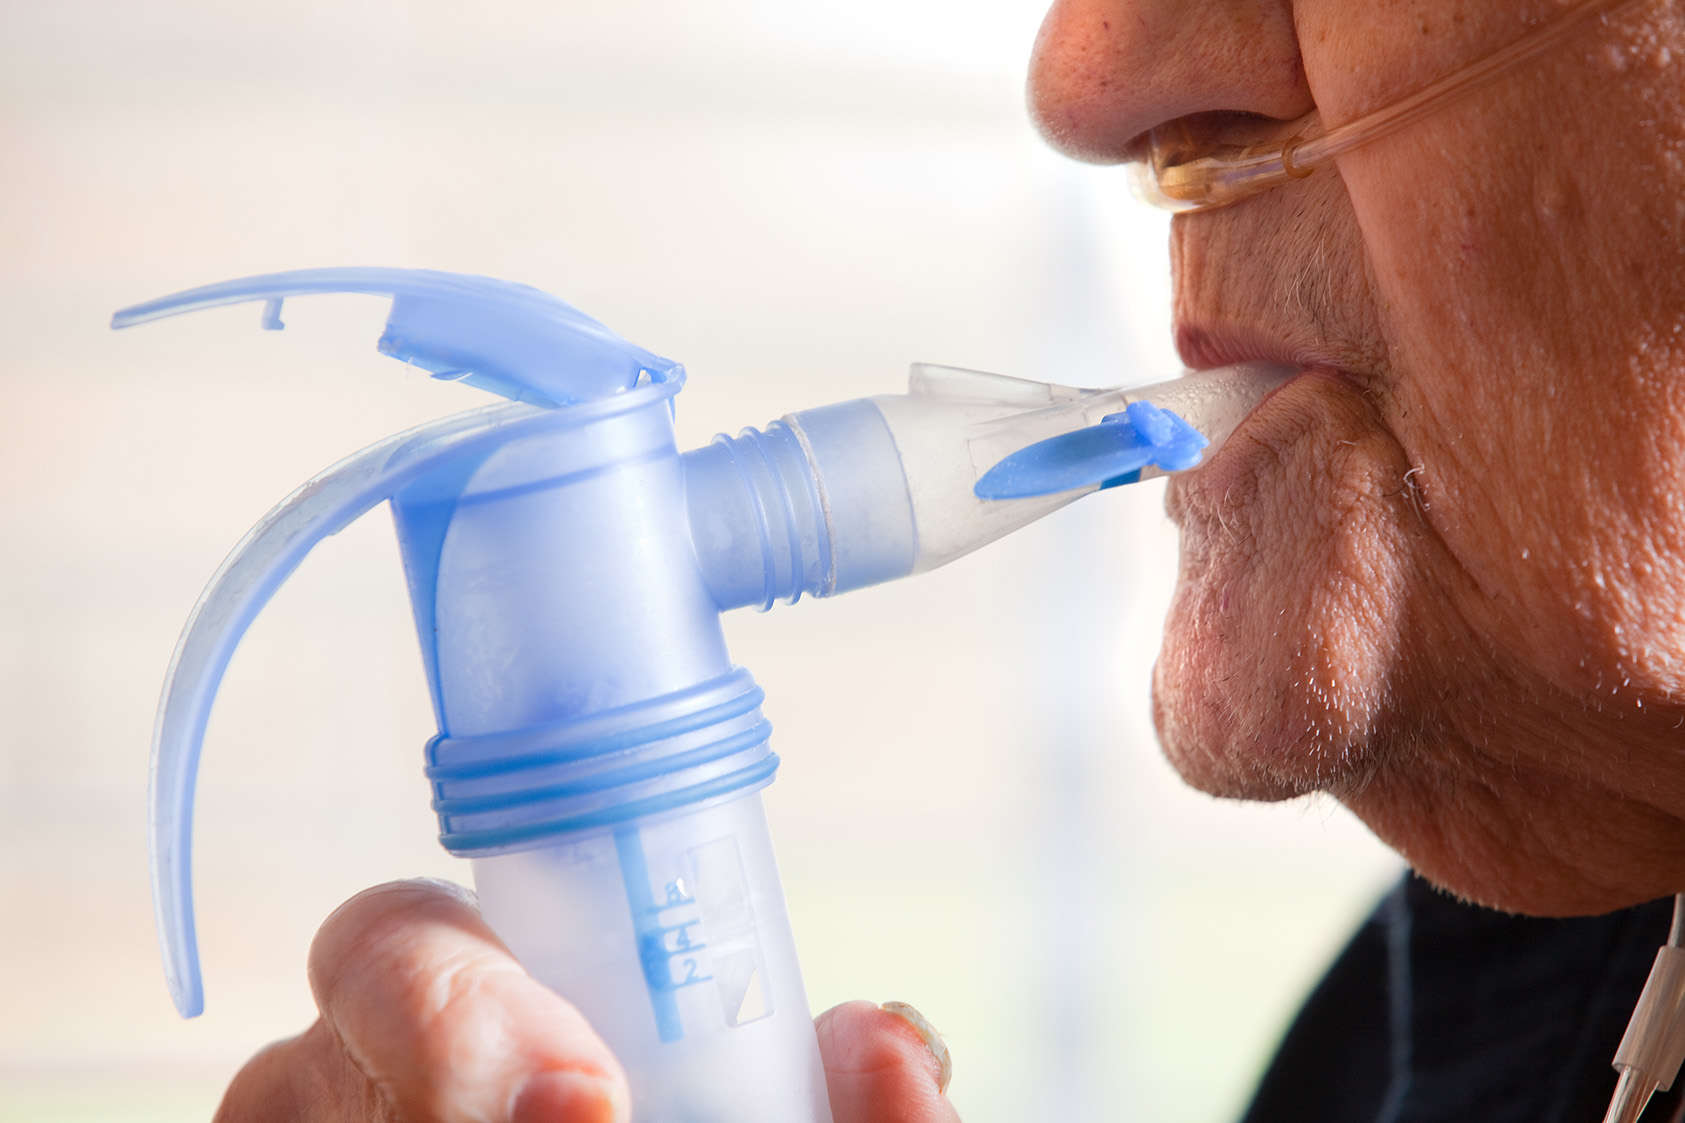 Close Up Of Elderly Man Using Nebulizer